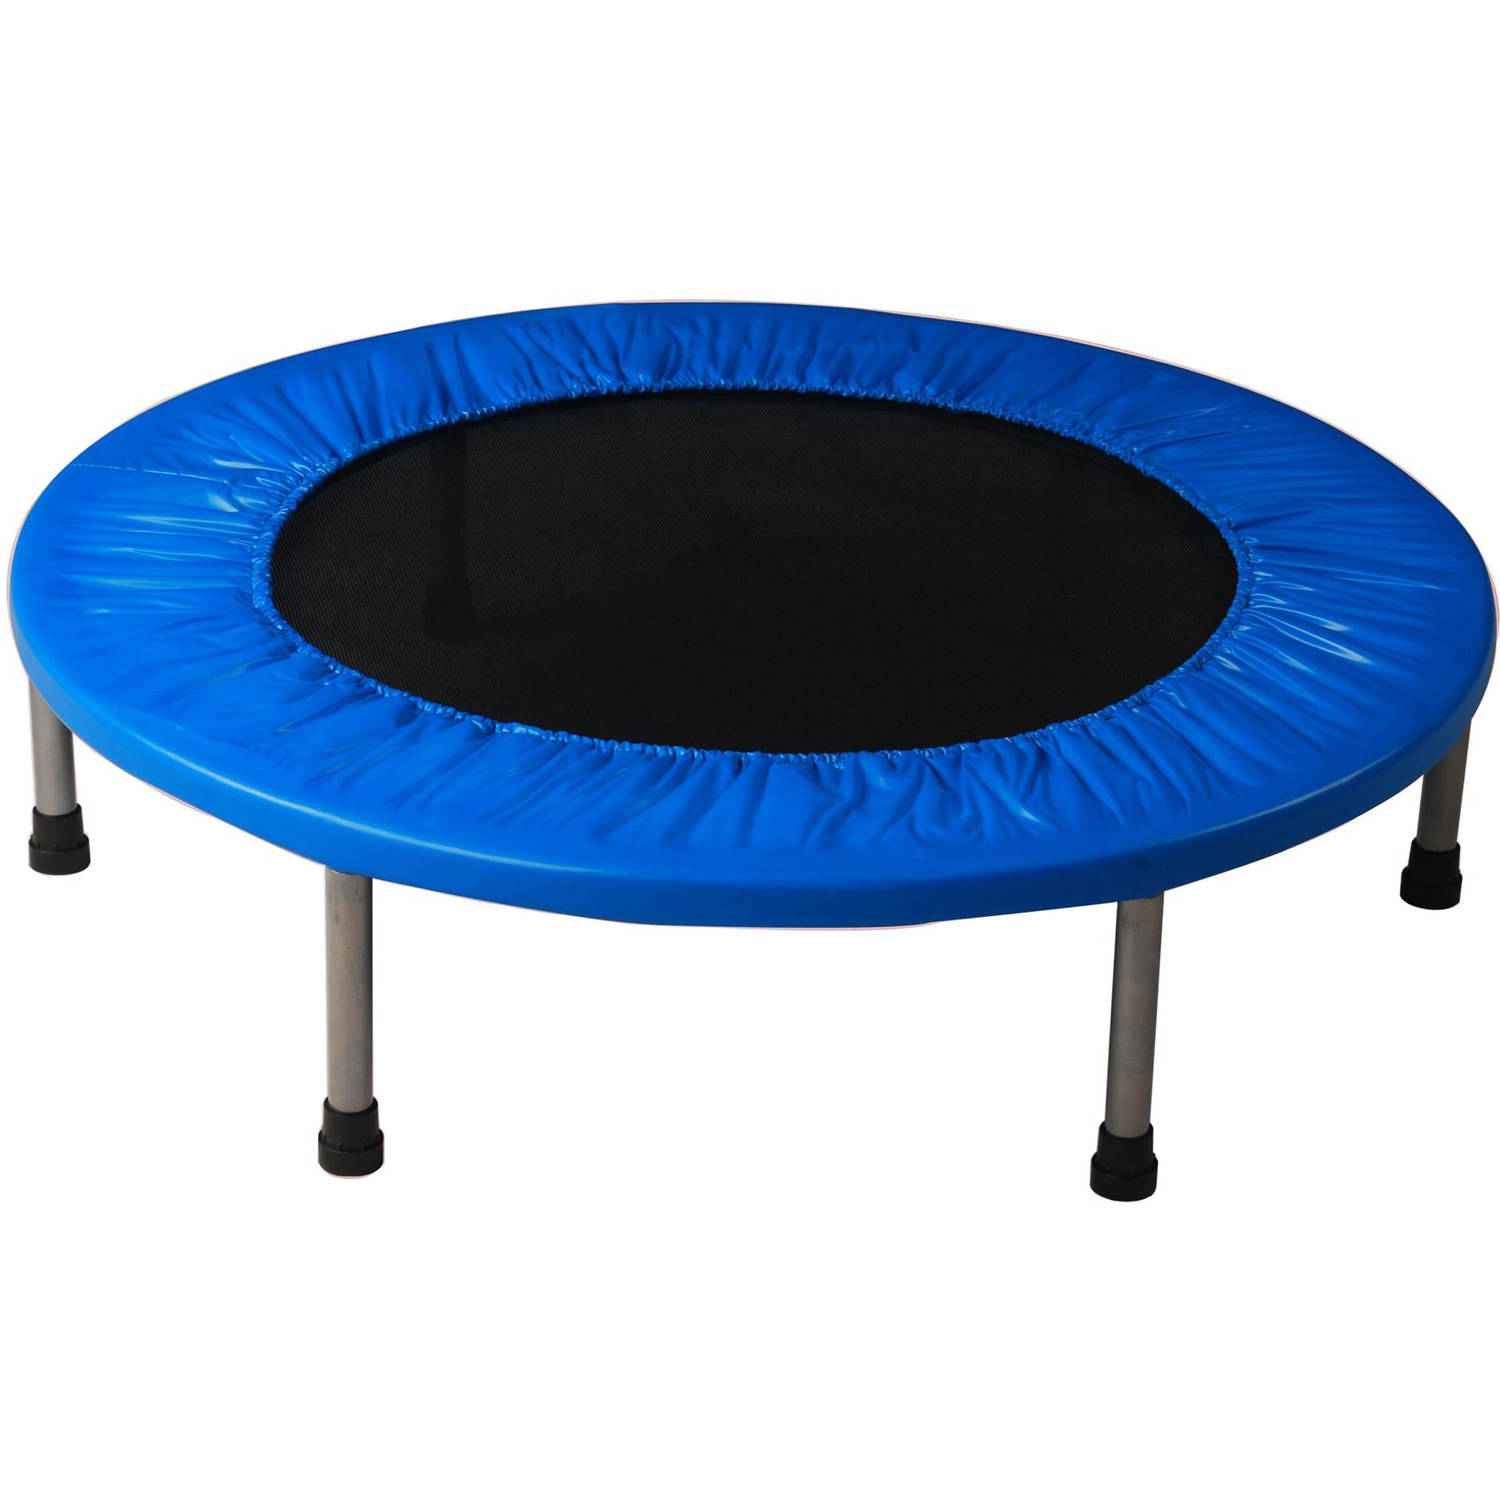 "Airzone 48"" Trampoline, Blue"